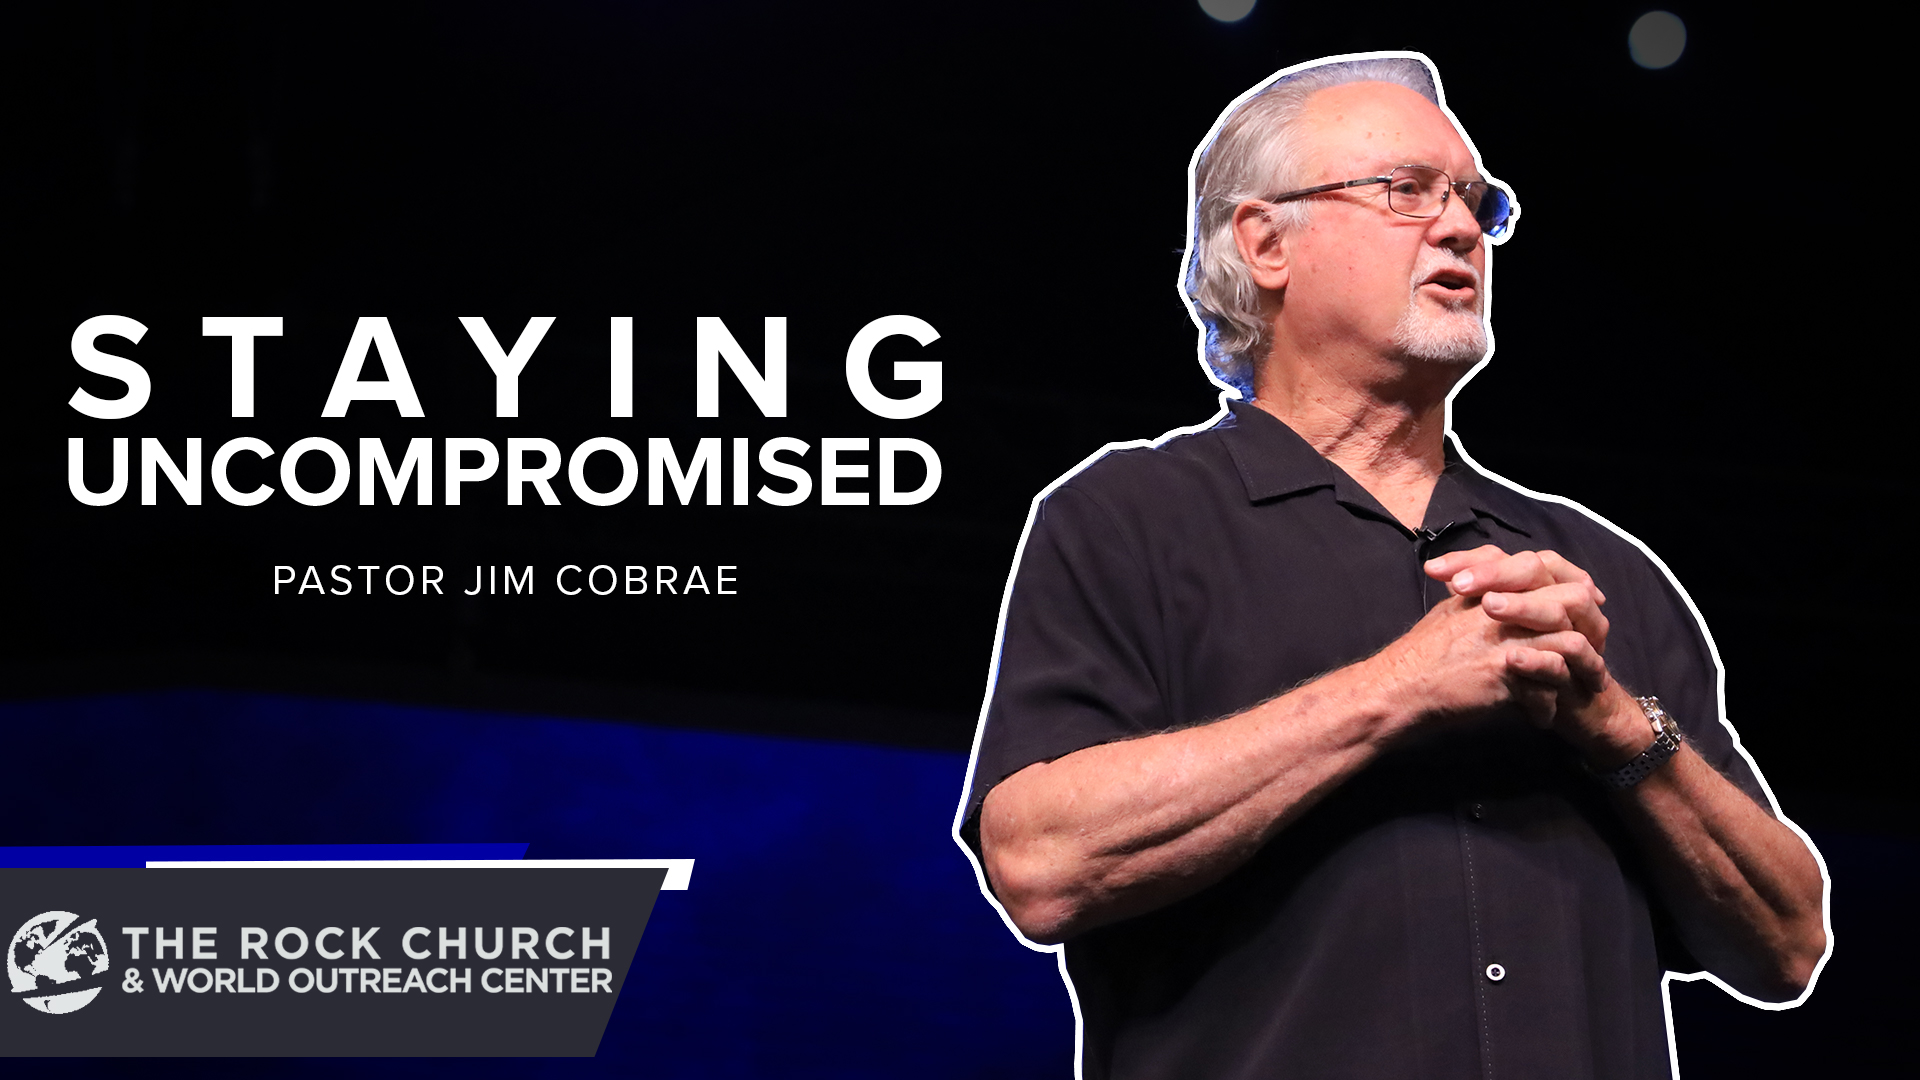 Watch Staying Uncompromised